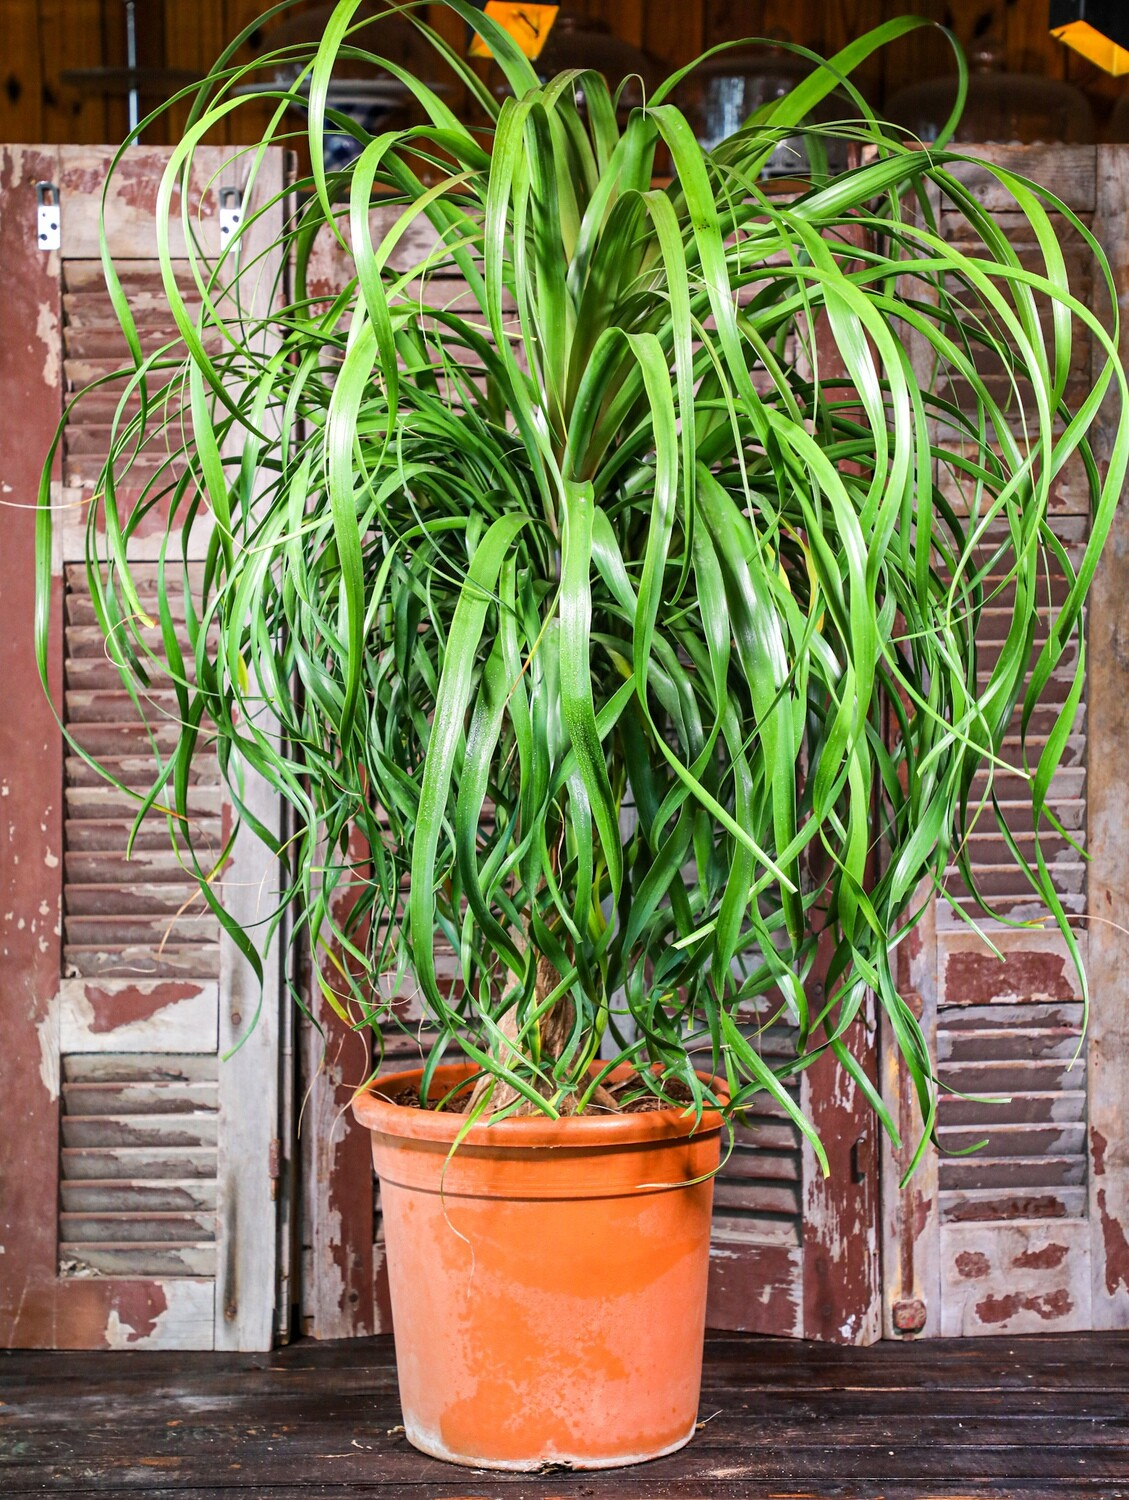 Beaucarnea recurvata (Plant) - Nature by Marc Beyrouthy